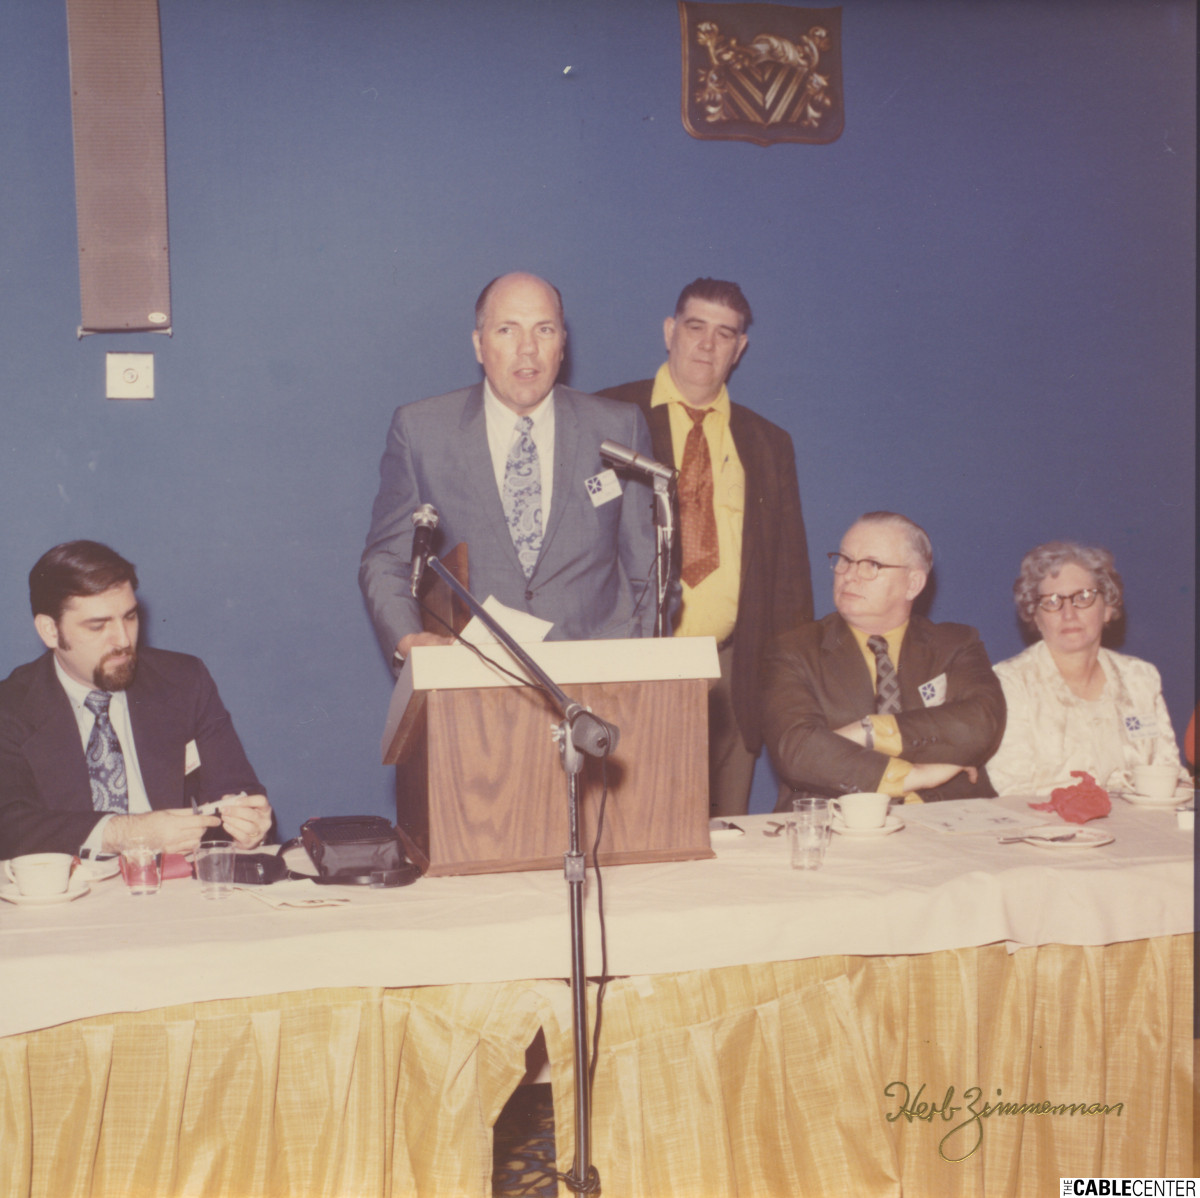 Paul Kagan, Bill Roberts, William Kenny, Owen and Madeline Hannigan at the 1973 NECTA convention